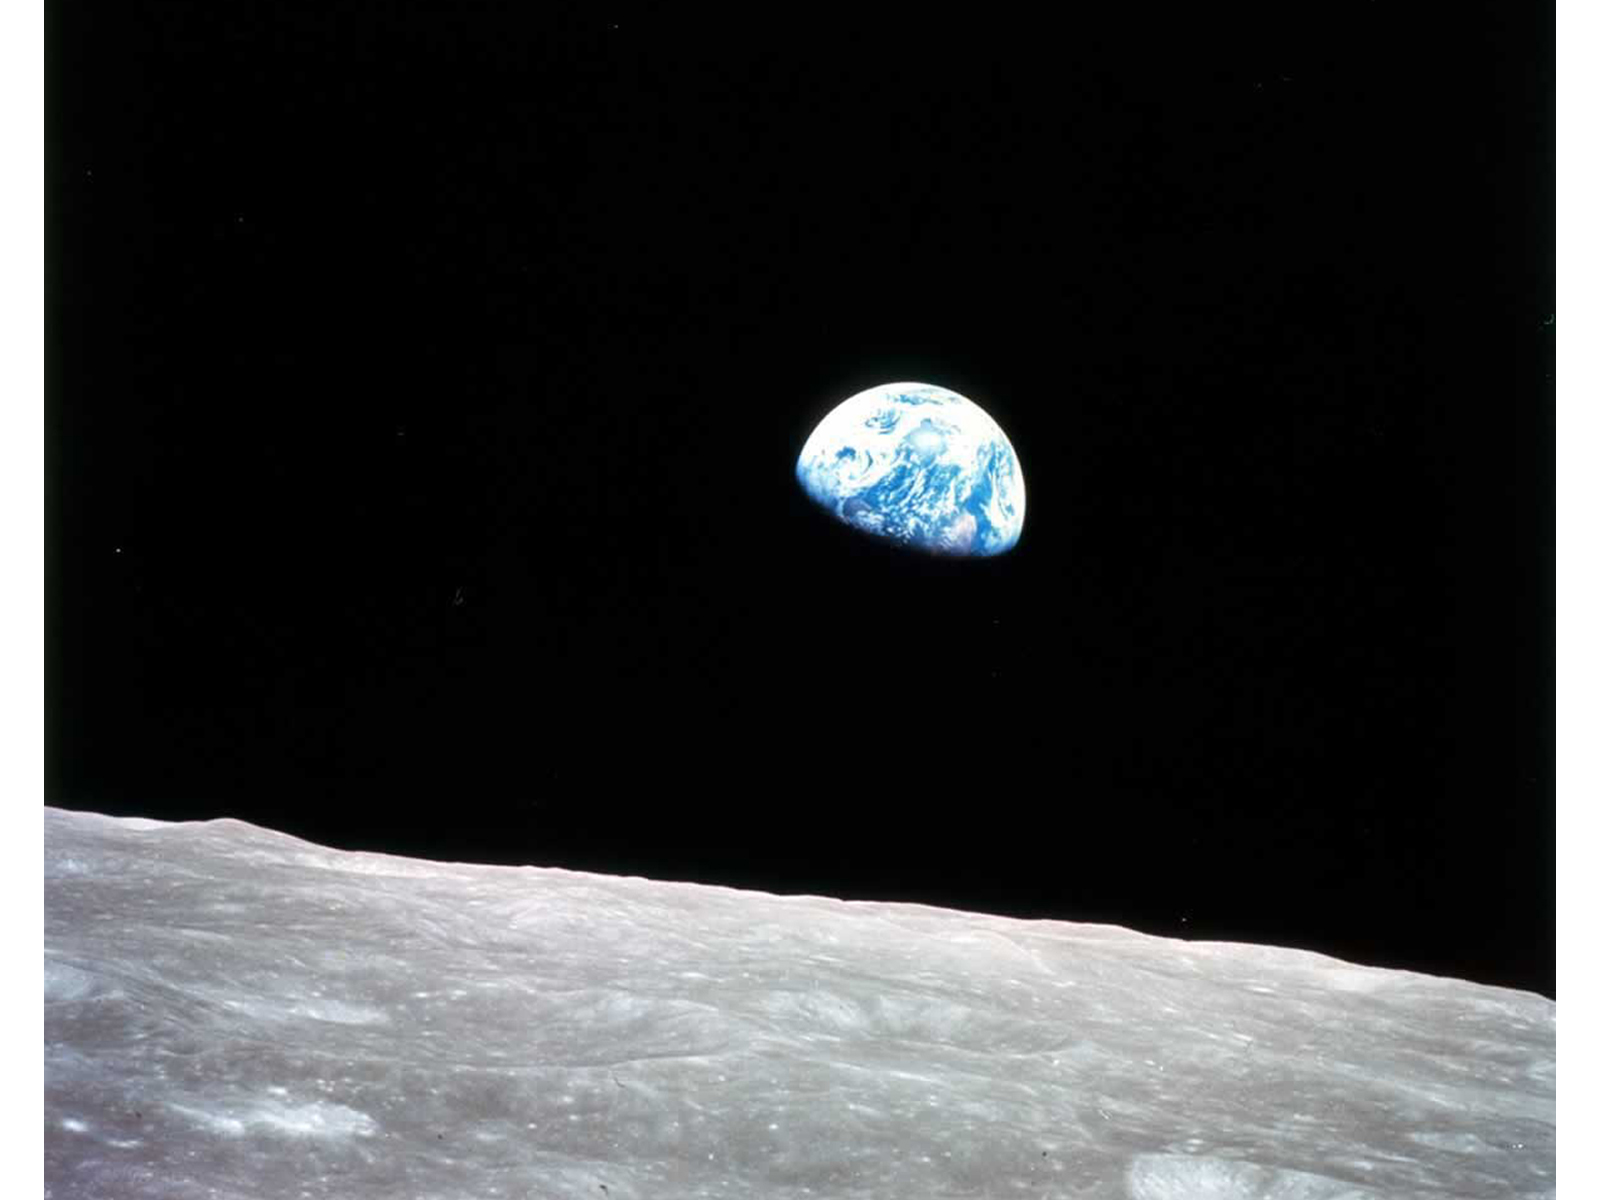 https://i0.wp.com/www.nasa.gov/images/content/261376main_31_Earthrise2.jpg